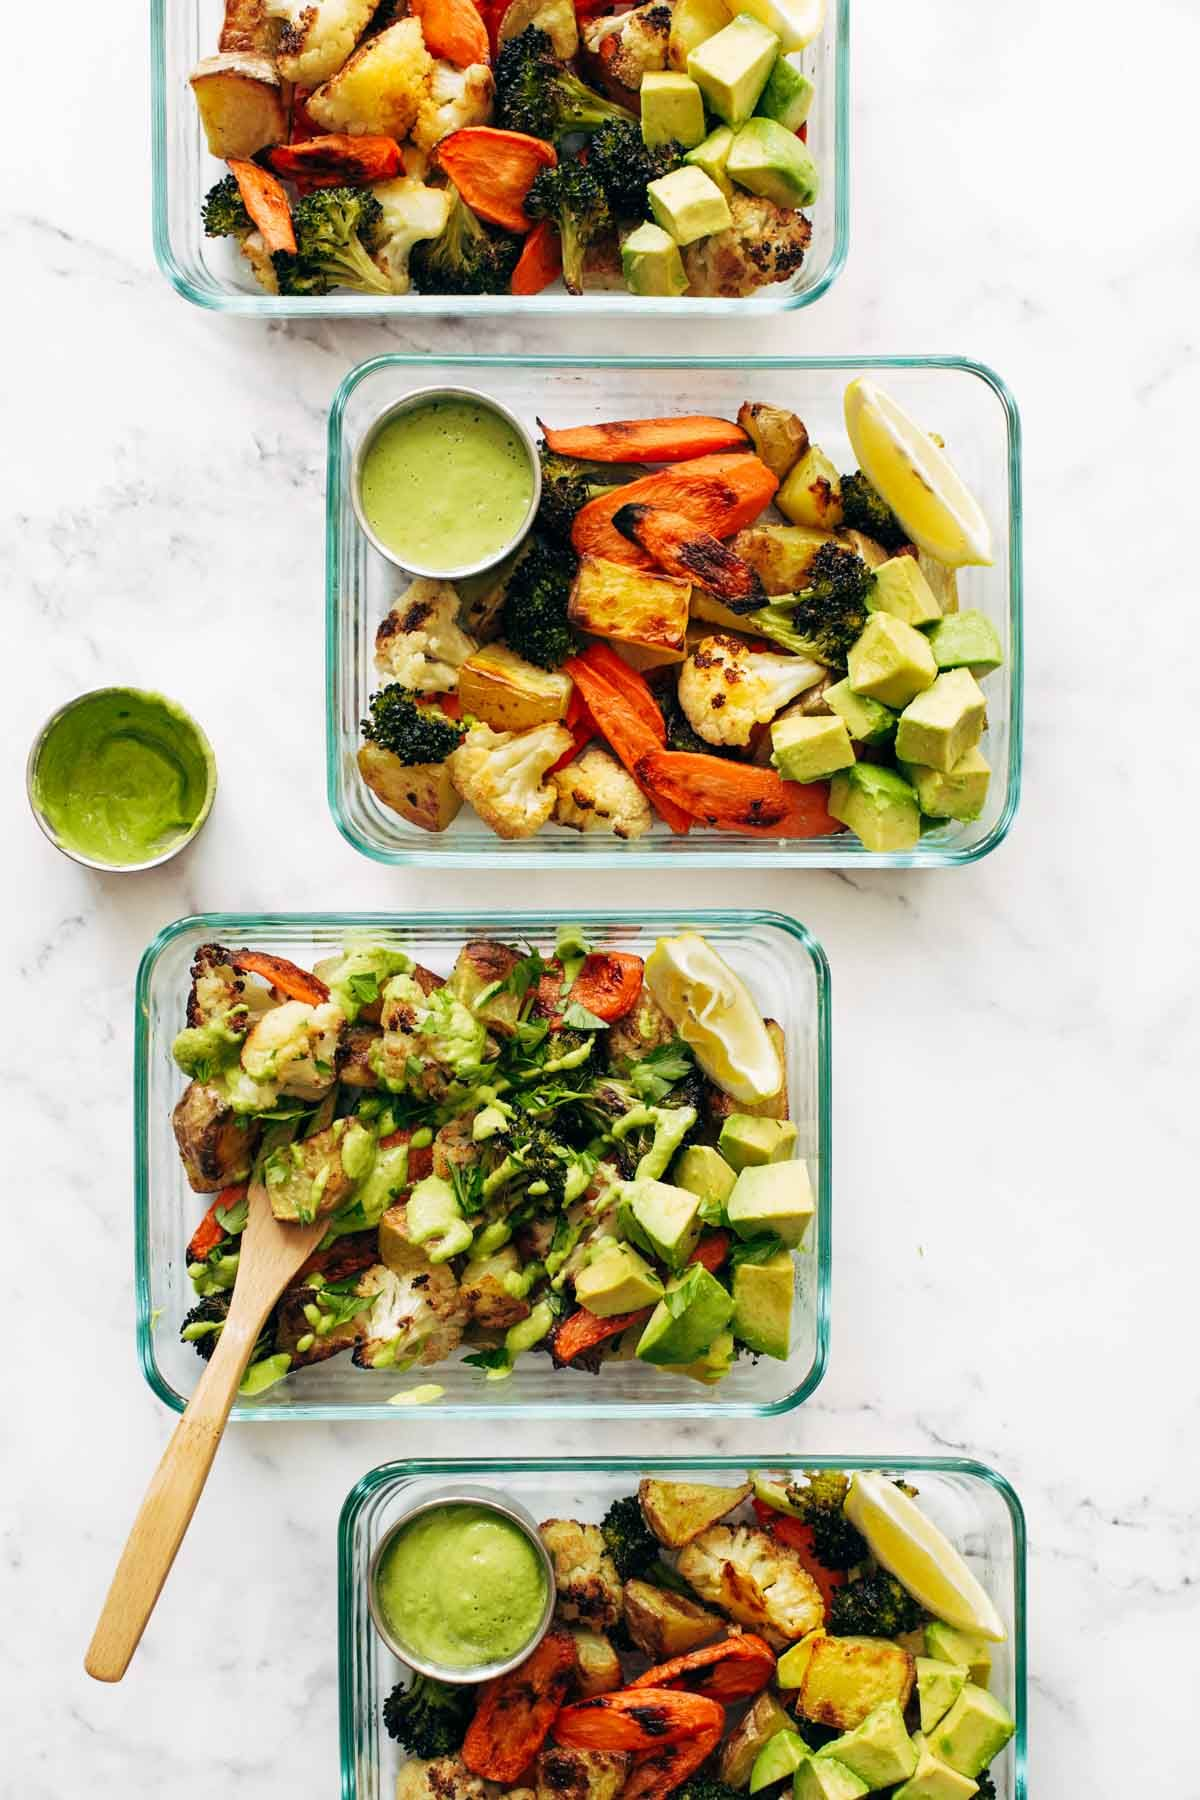 Roasted Vegetable Bowls With Green Tahini Pinch Of Yum Recipe Vegetarian Recipes Clean Eating Snacks Food